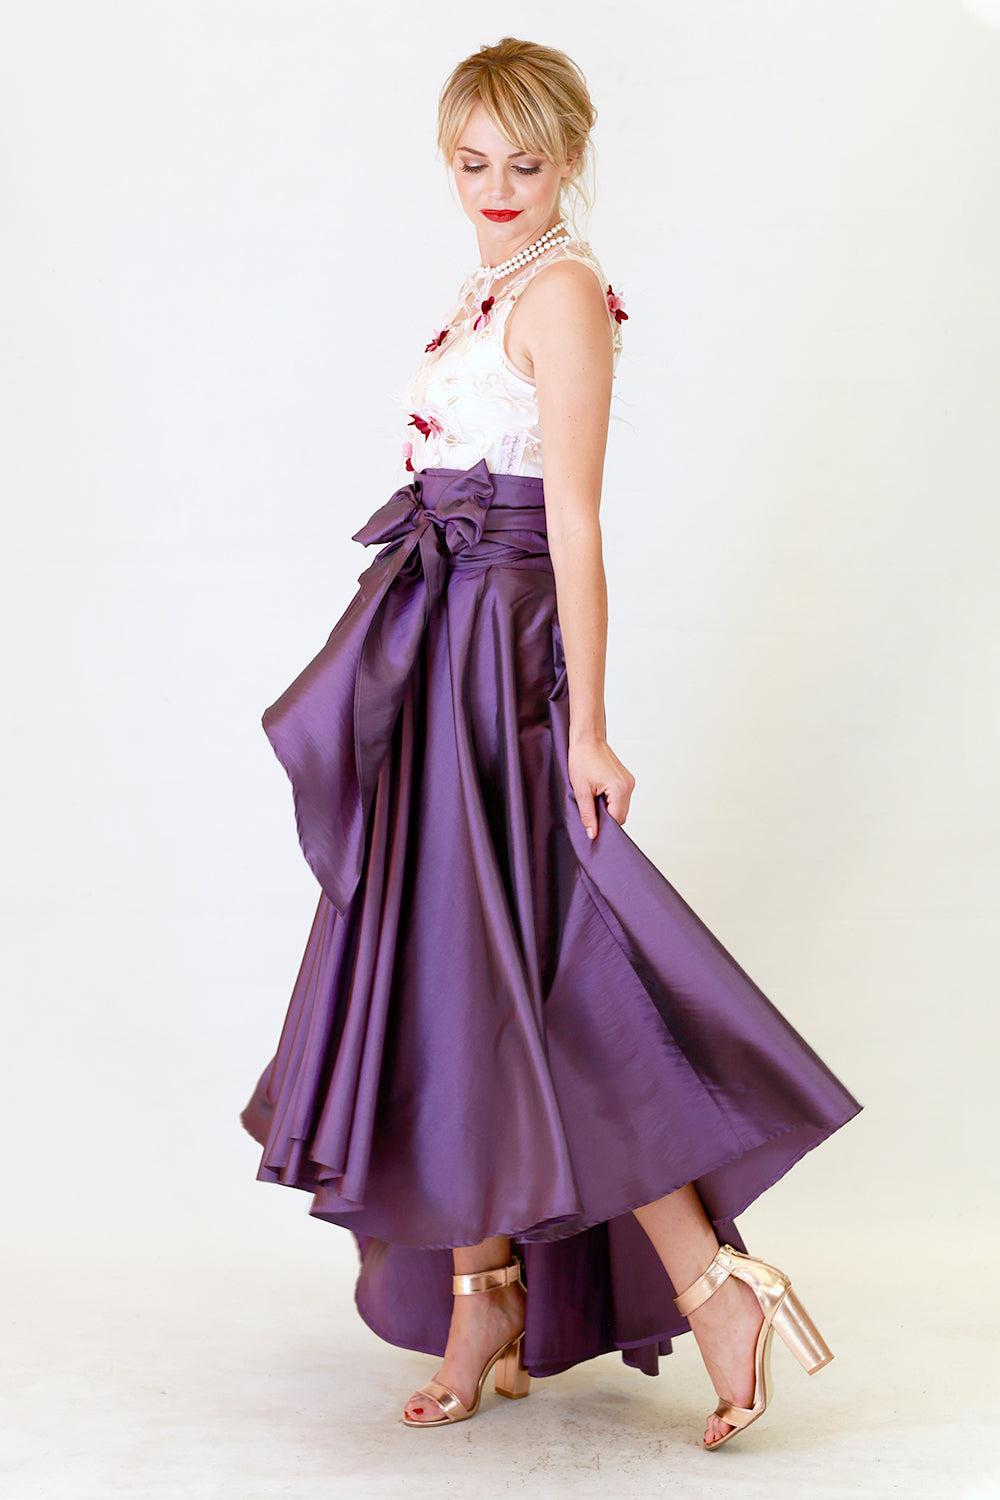 Miriam Marie Skirt | Wrap Around Dresses Skirts | New Zealand Fashion | Annah Stretton